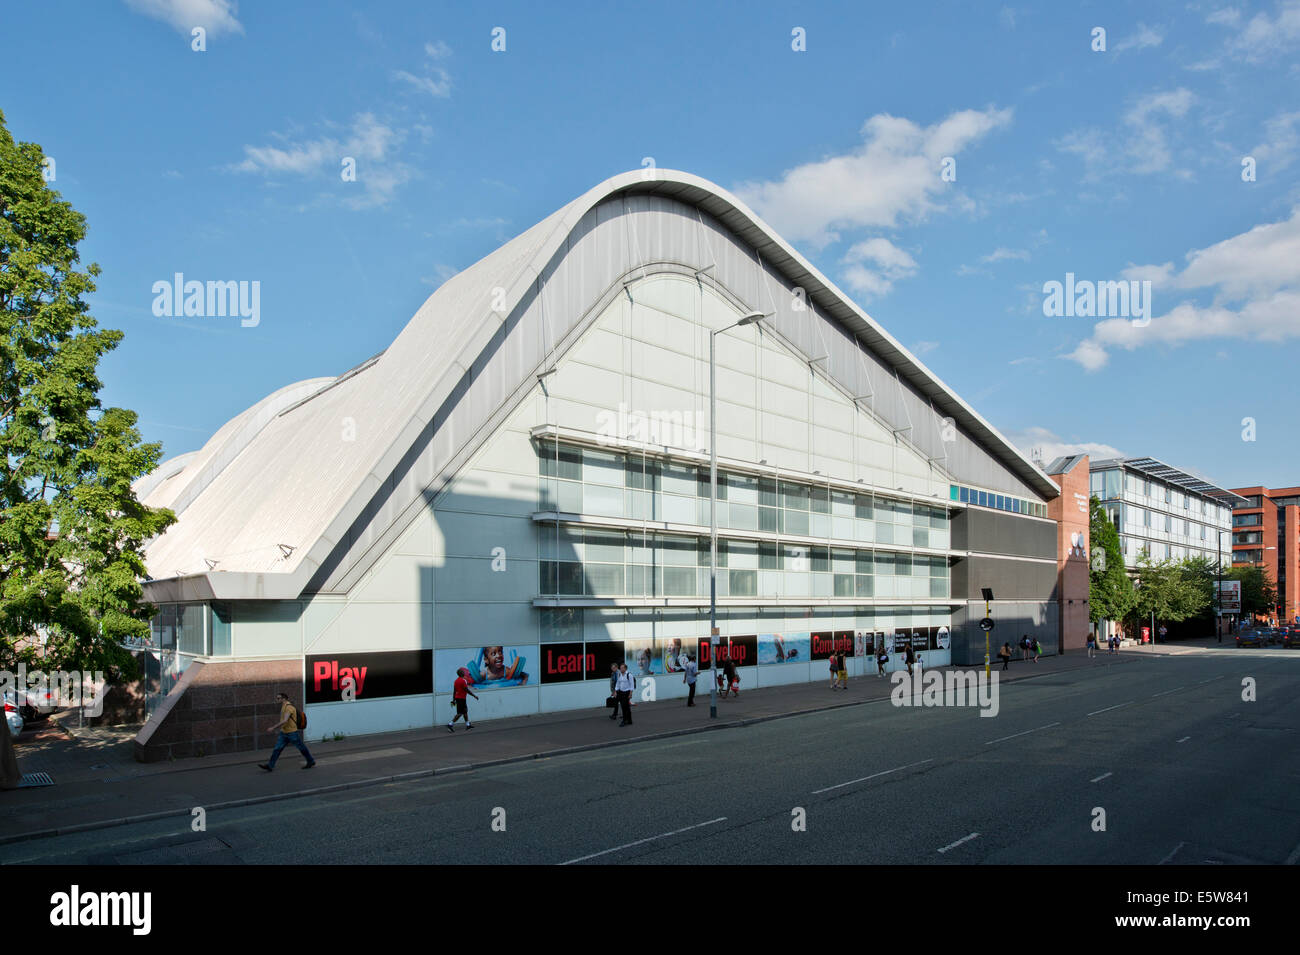 Manchester Aquatics Centre Building On A Sunny Day Located On - Where is oxford located